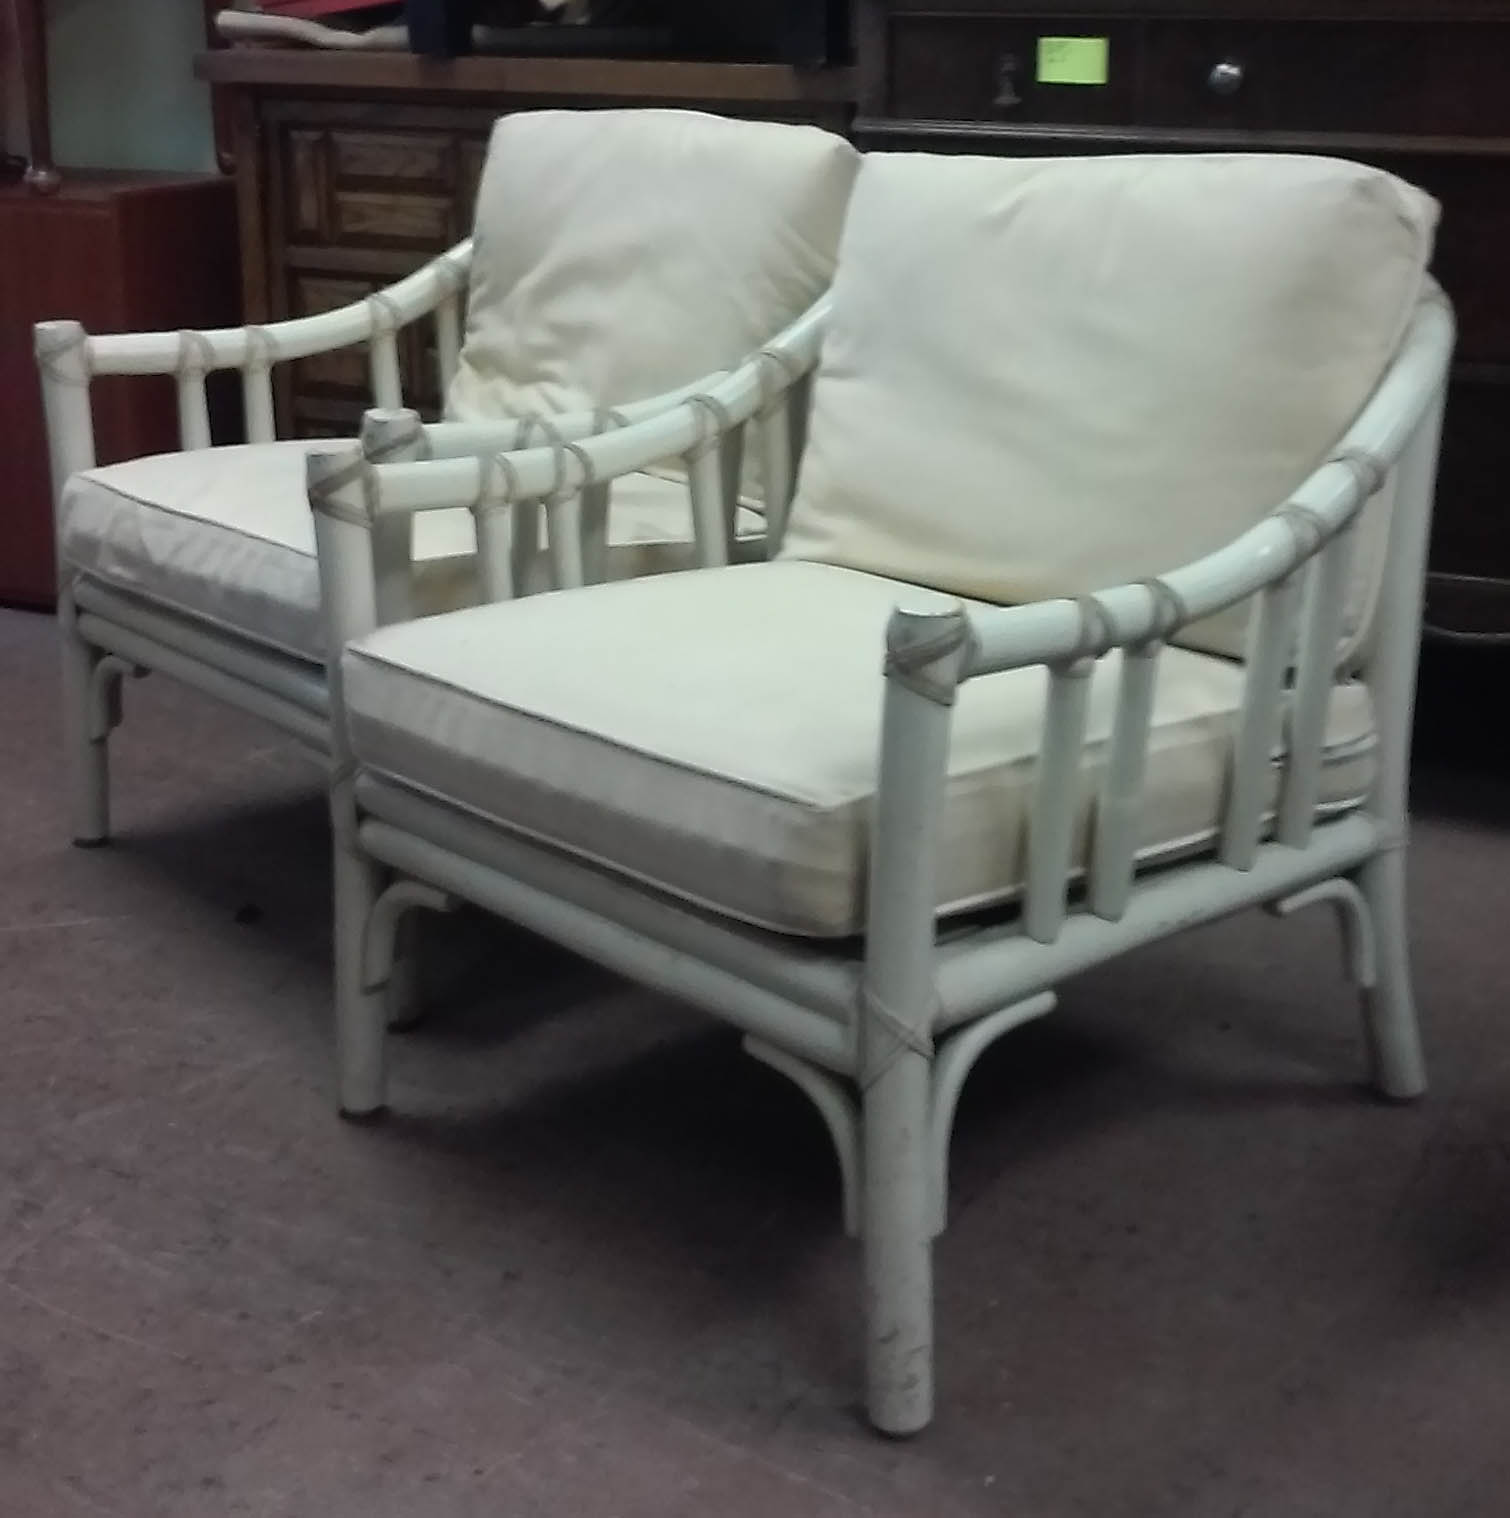 Uhuru furniture collectibles sold reduced mcguire for Reduced furniture